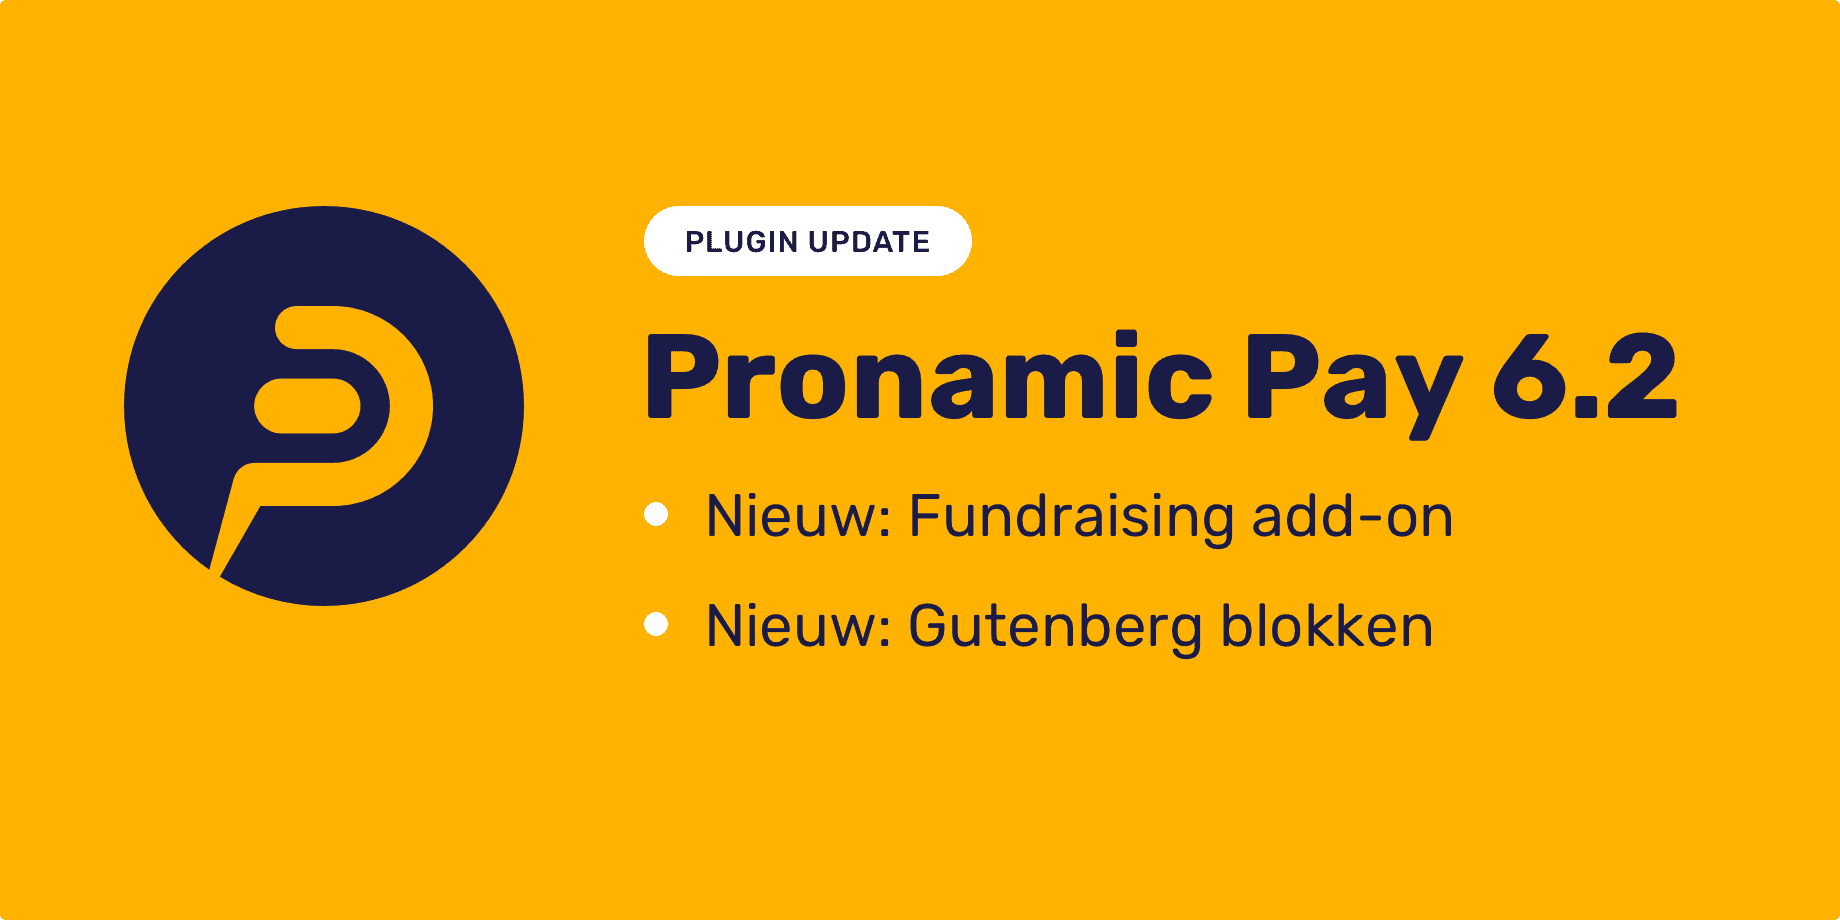 Pronamic Pay 6.2 Fundraising